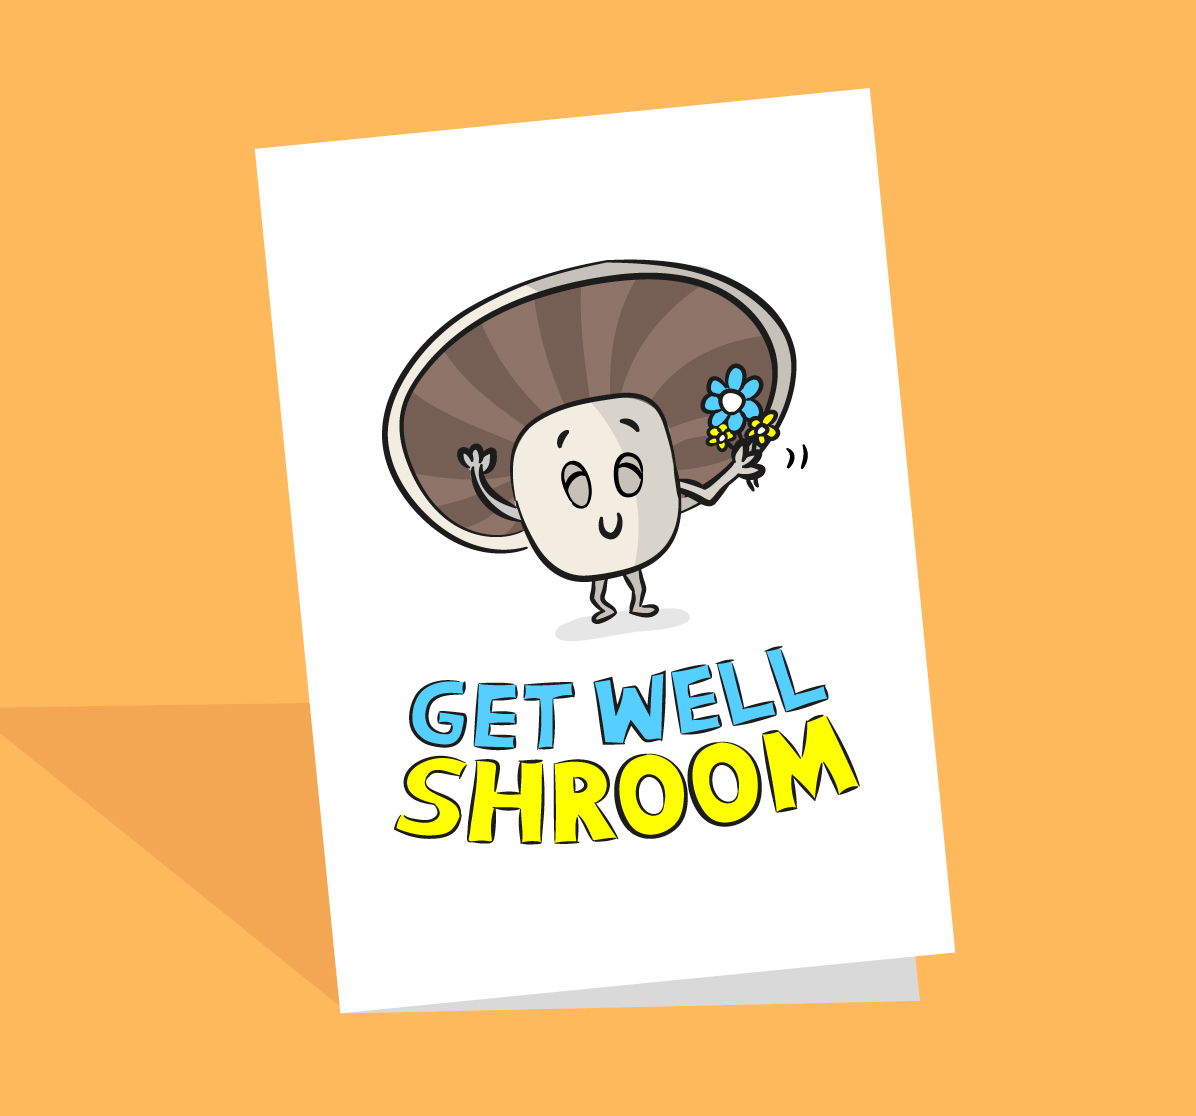 Get well soon mushroom card